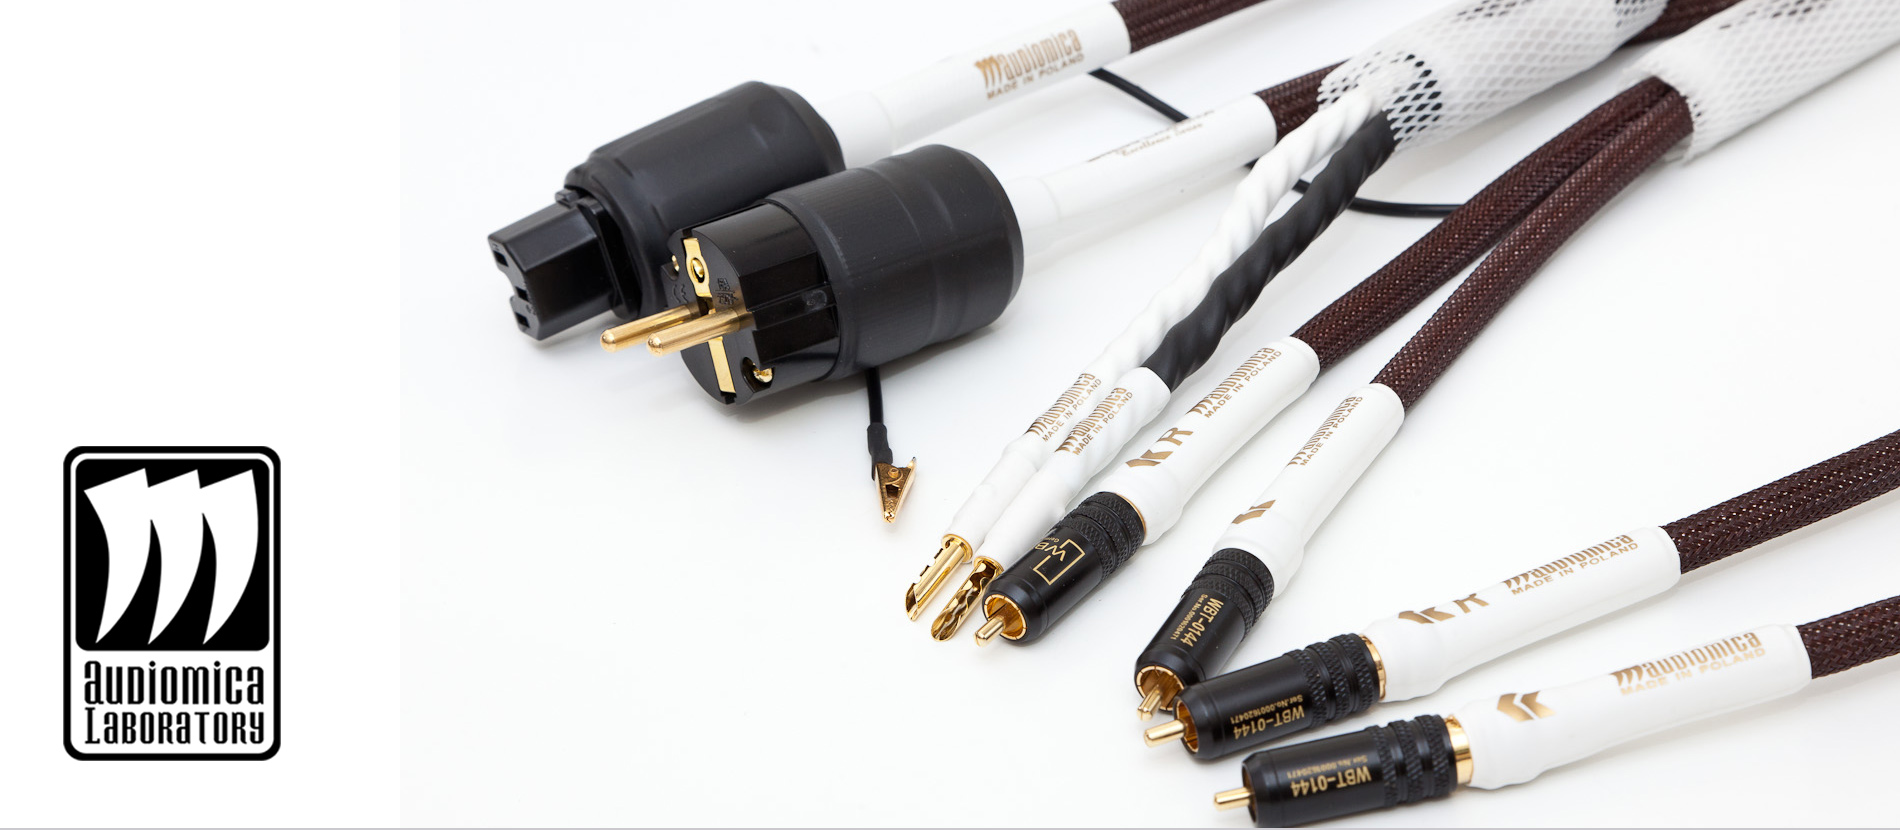 Audiomica Cables